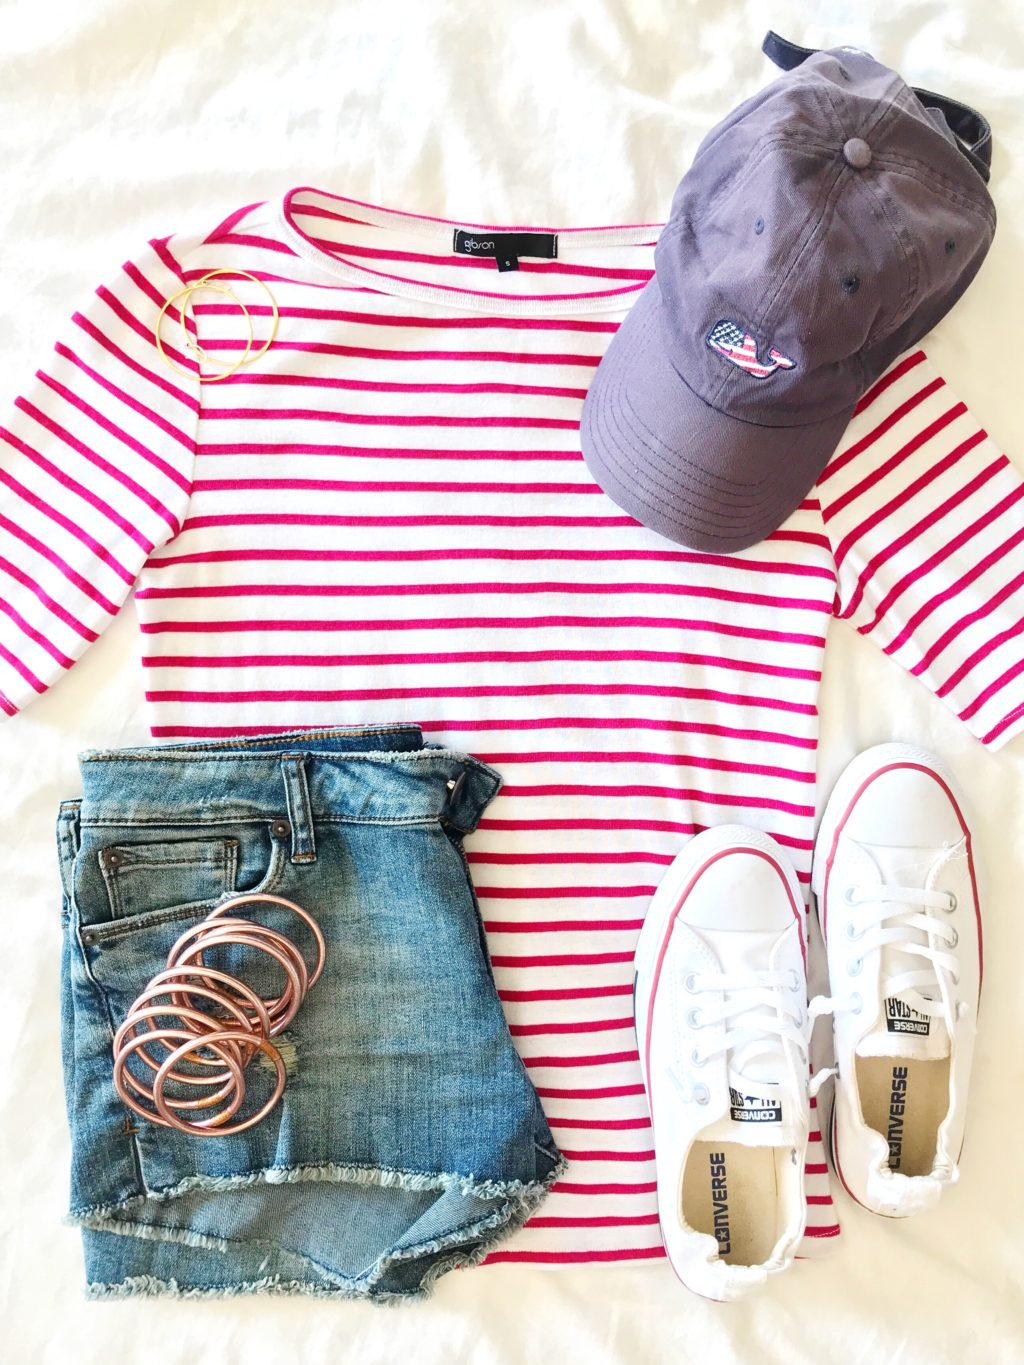 classic breton stripe shirt outfit idea with white converse sneakers for the fourth of july